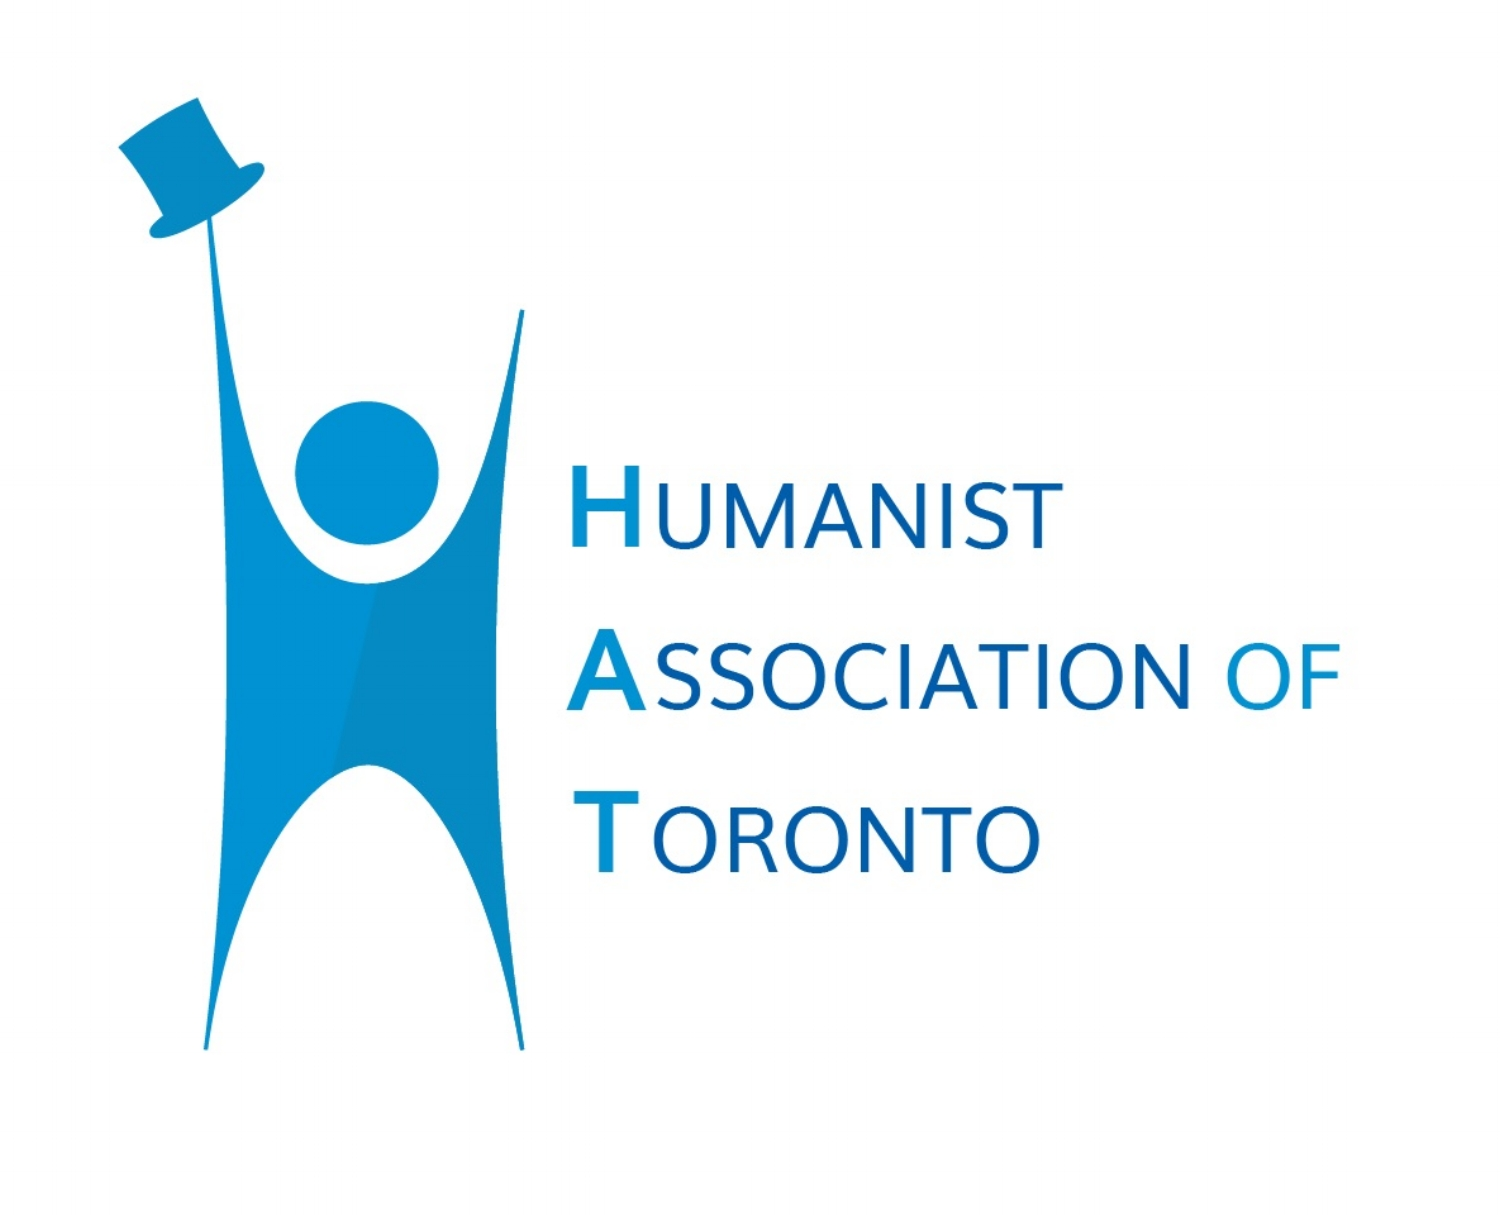 What Is Humanism Humanist Association Of Toronto